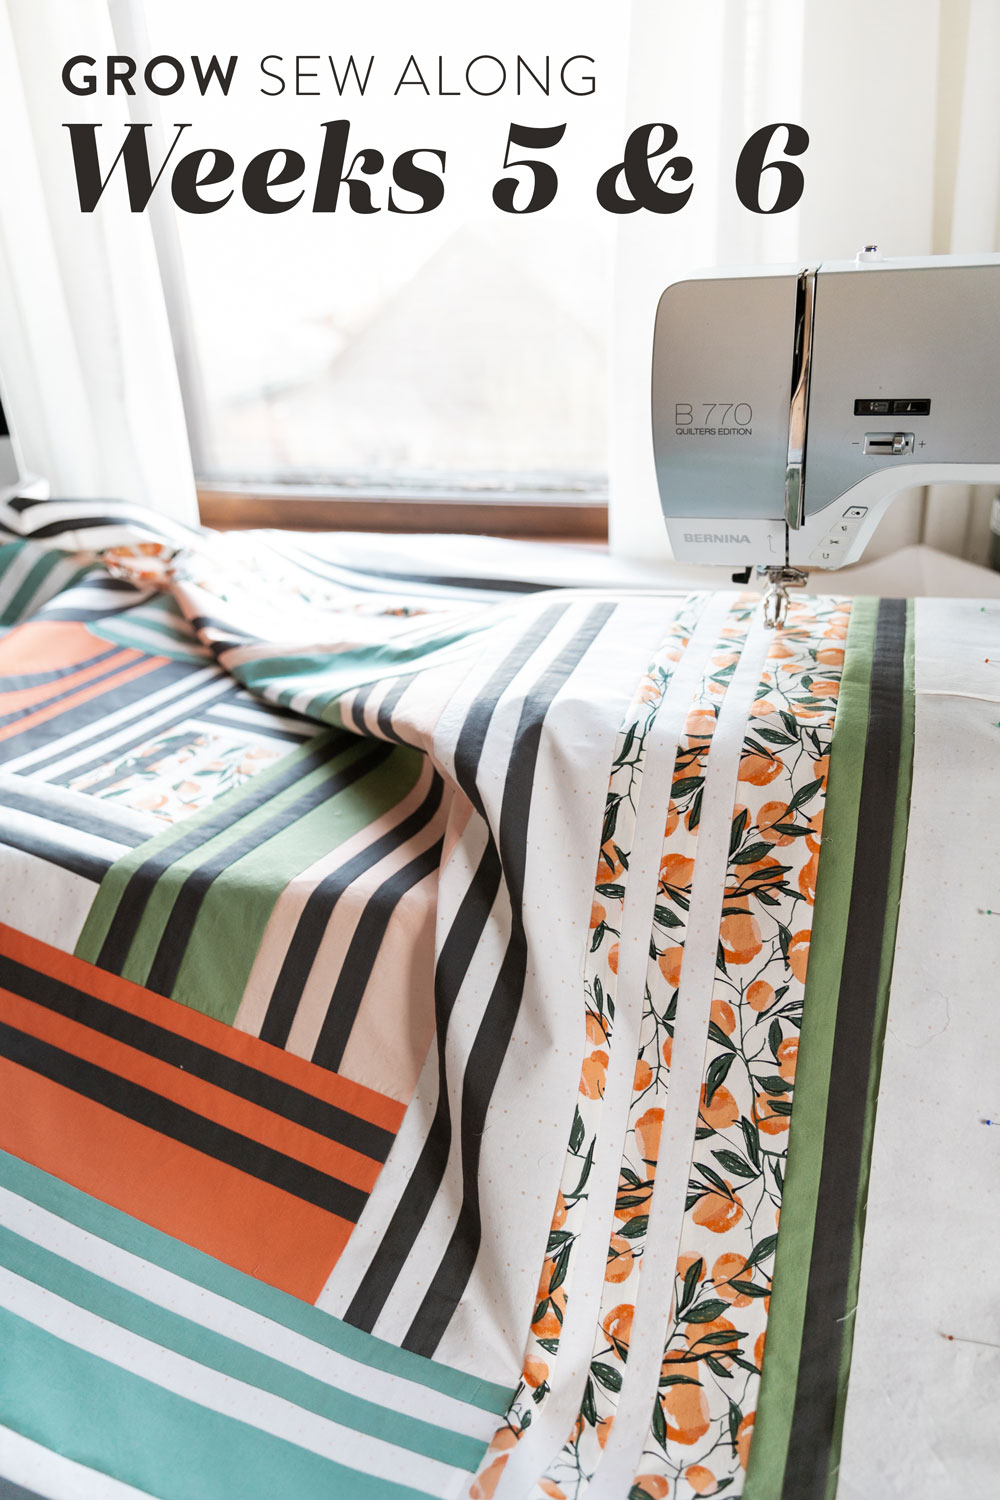 In Weeks 5 and 6 of the Grow quilt sew along we assemble the quilt top. Check out this video tutorial to show you how simple it is! suzyquilts.com #quilting #quiltpattern